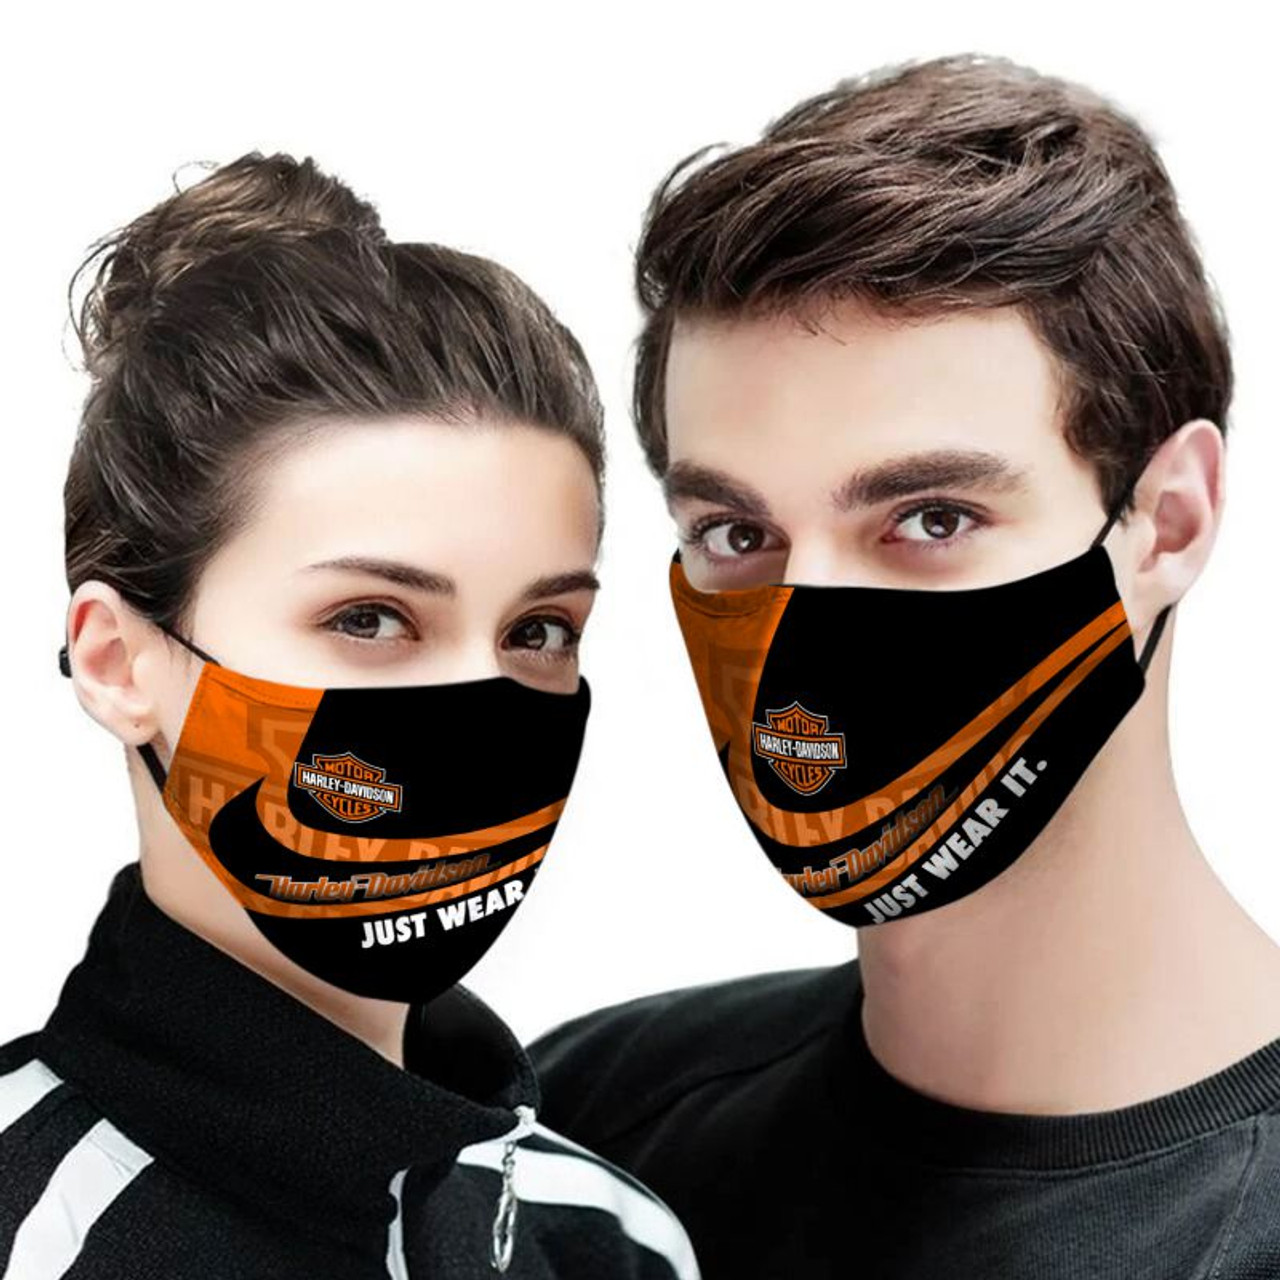 **(OFFICIAL-HARLEY-DAVIDSON-BIKERS-CUSTOM-3D-PRINTED DESIGNS/BREATHABLE PM2.5 FILTER BACTERIA/VIRUS PROOF & ANTI DUST PROOF WITH-ADJUSTABLE TIE-BACKS/REUSABLE-MACHINE-WASHABLE CUSTOM FACE MASKS/ALL-ADJUSTABLE-NOSE-CLIPS & INSIDE-5-LAYERED-FILTERS)**